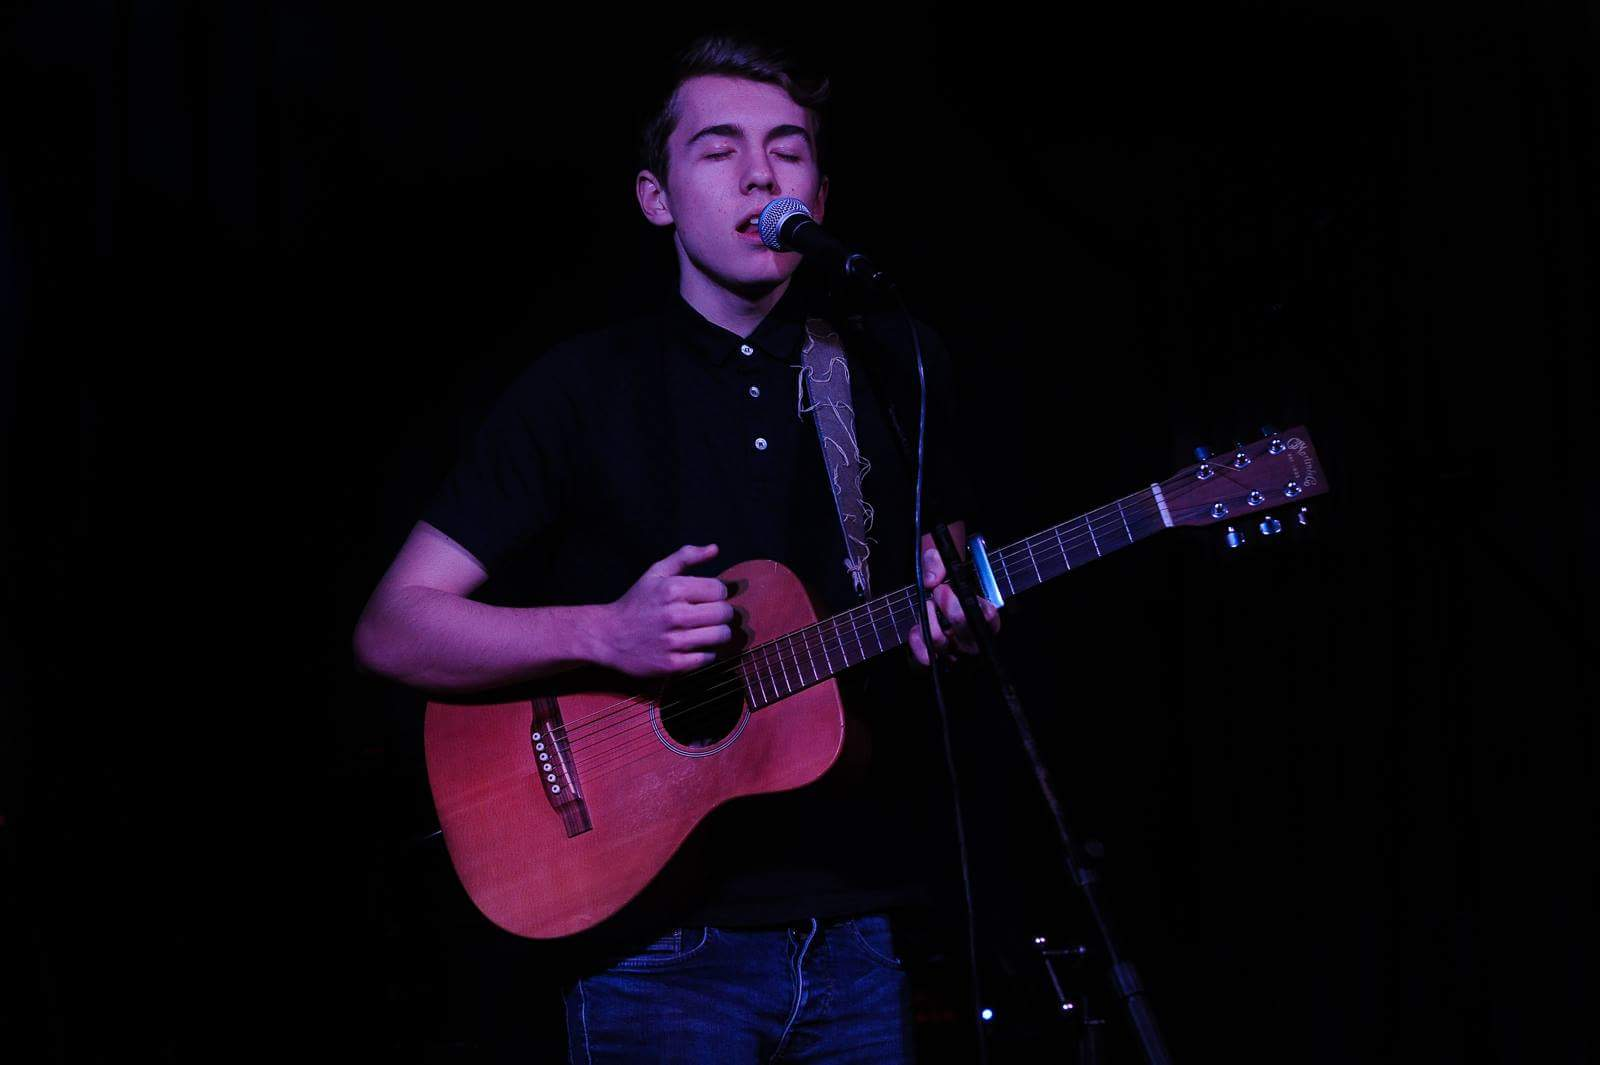 James at Roots Music Club, Doncaster, 19 feb 2016. Photo by Stephen Connor.